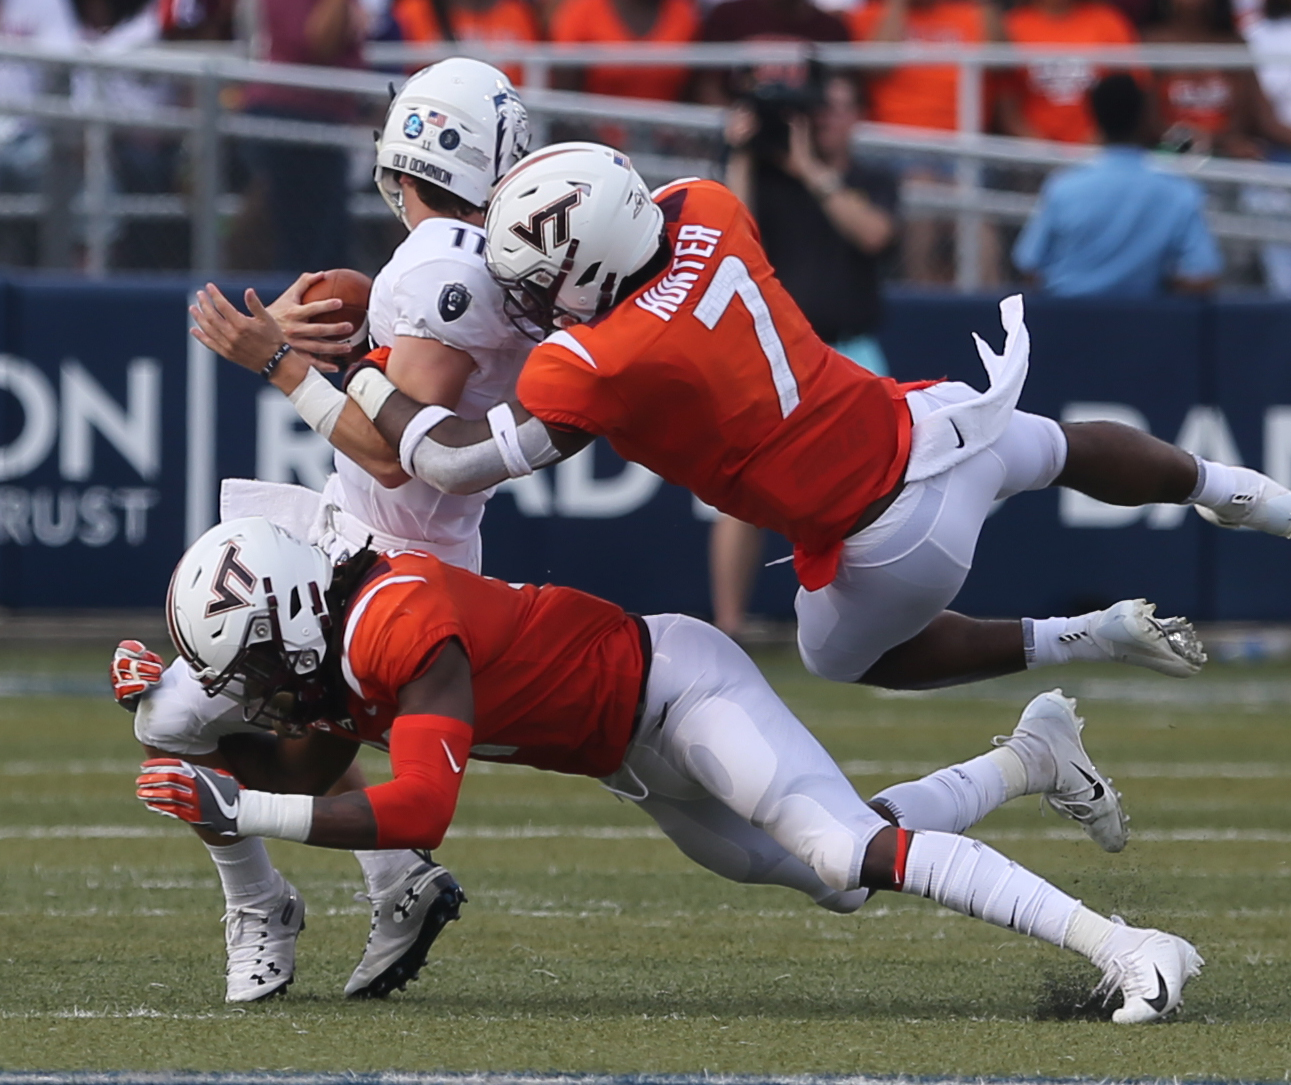 Old Dominion's Blake LaRussa gets wrapped up by Virginia Tech's Devon Hunter (7) and Reggie Floyd (21) during the second half of an NCAA college football game, Saturday, Sept. 22, 2018, in Norfolk, Va. Old Dominion won 49-35. (AP Photo/Jason Hirschfeld)